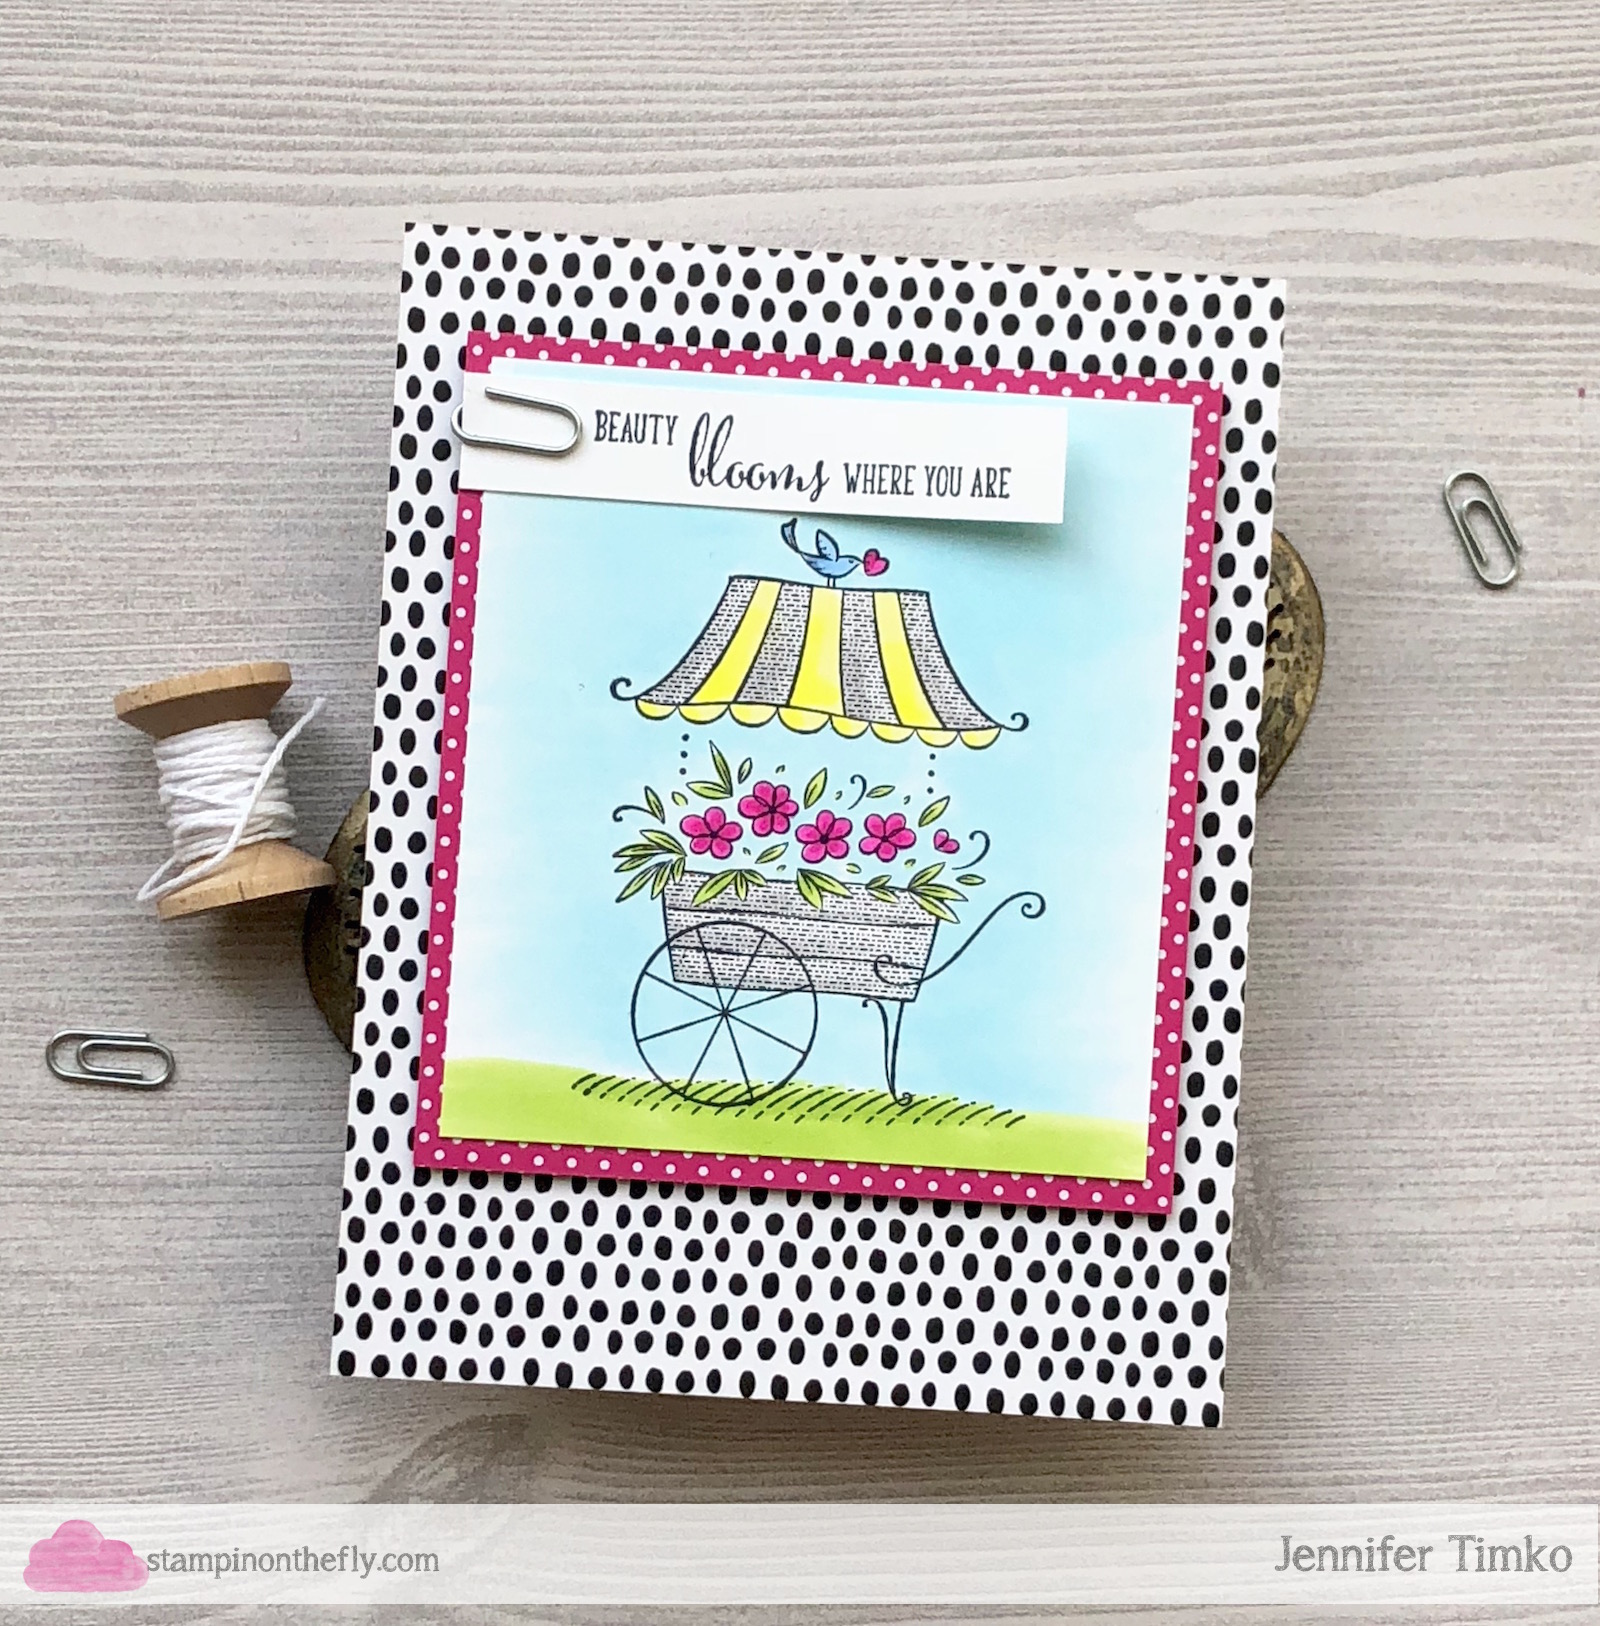 Beauty Blooms by Jen Timko | Friendship's Sweetest Thoughts Stamp by Stampin' Up, Copic Coloring, Tutti-Frutti DSP by Stampin' Up